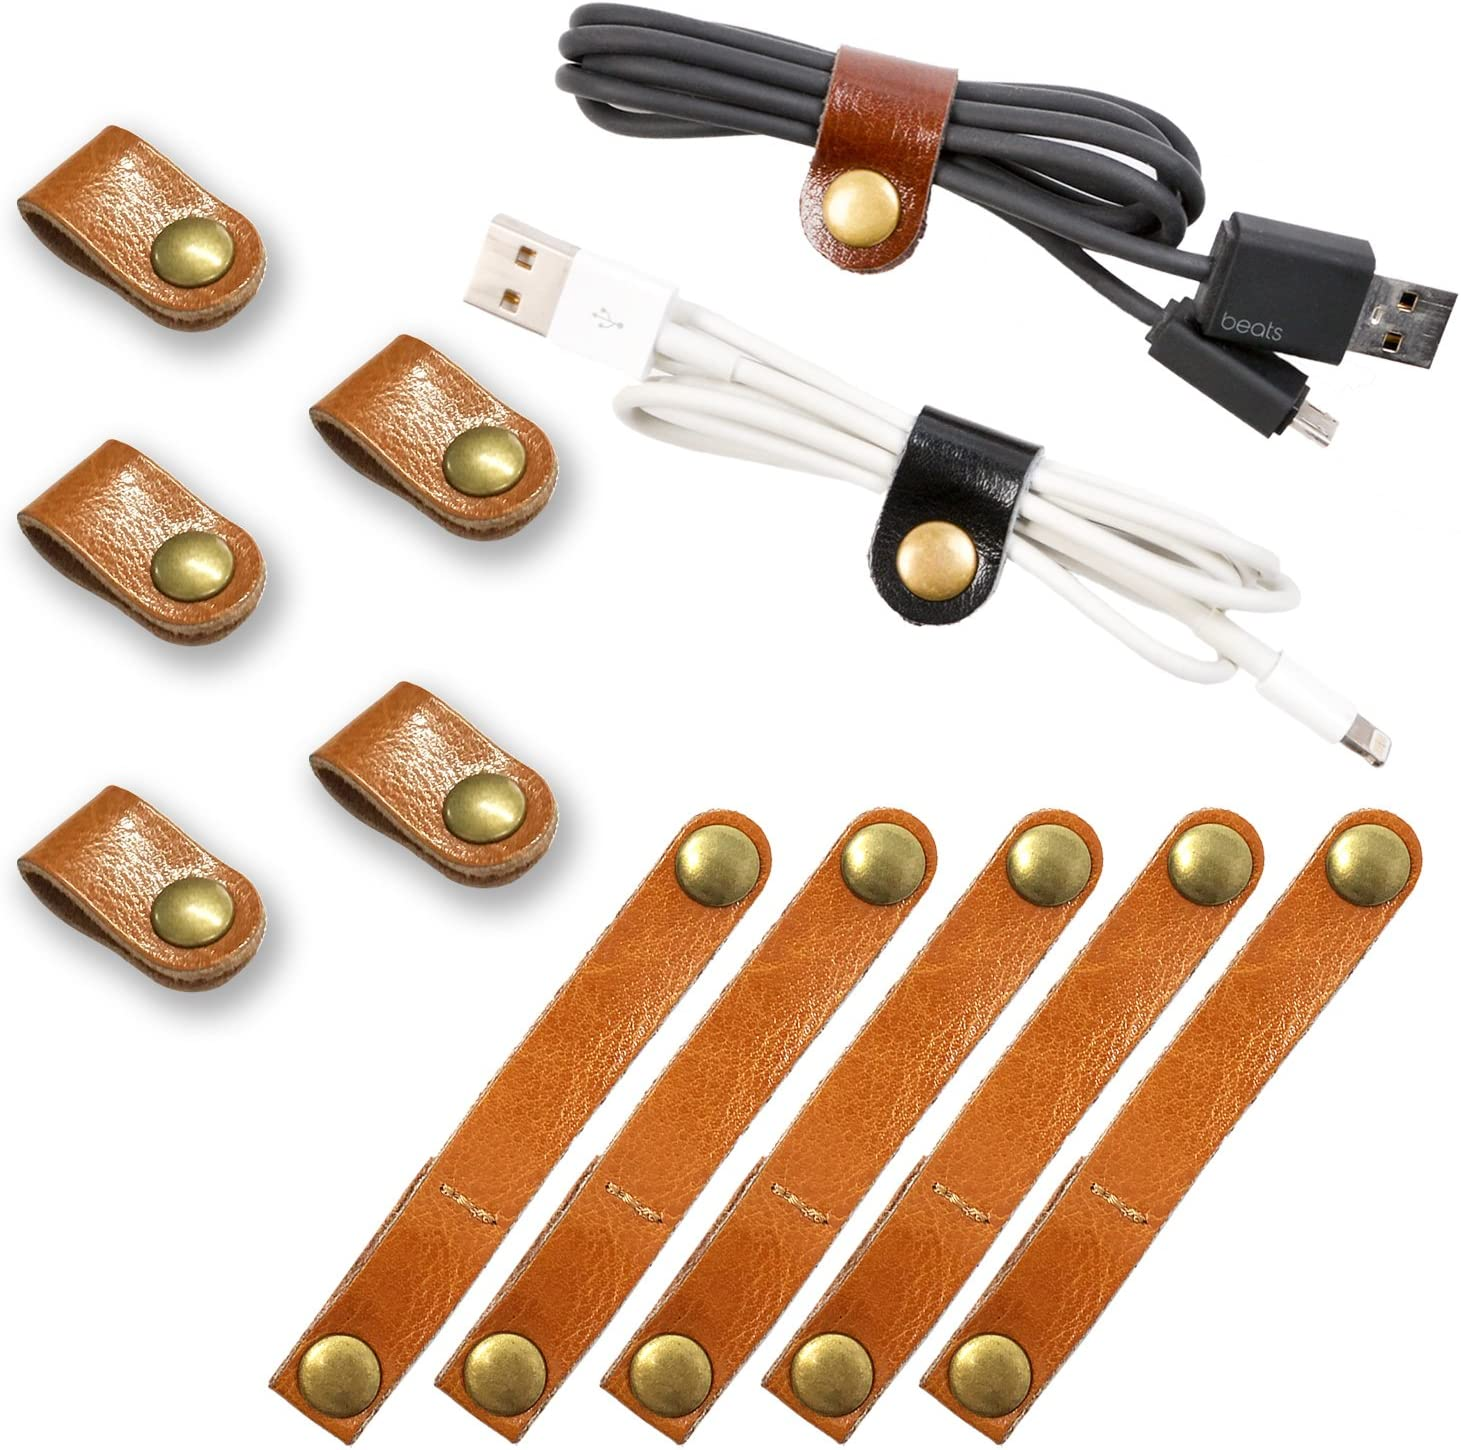 FIBOUND 10pcs Earphone Winder Leather Cable Straps,Cable Ties Leather Cord Organizer,USB Cable Clips,Earphone Winder with Leather Handmade